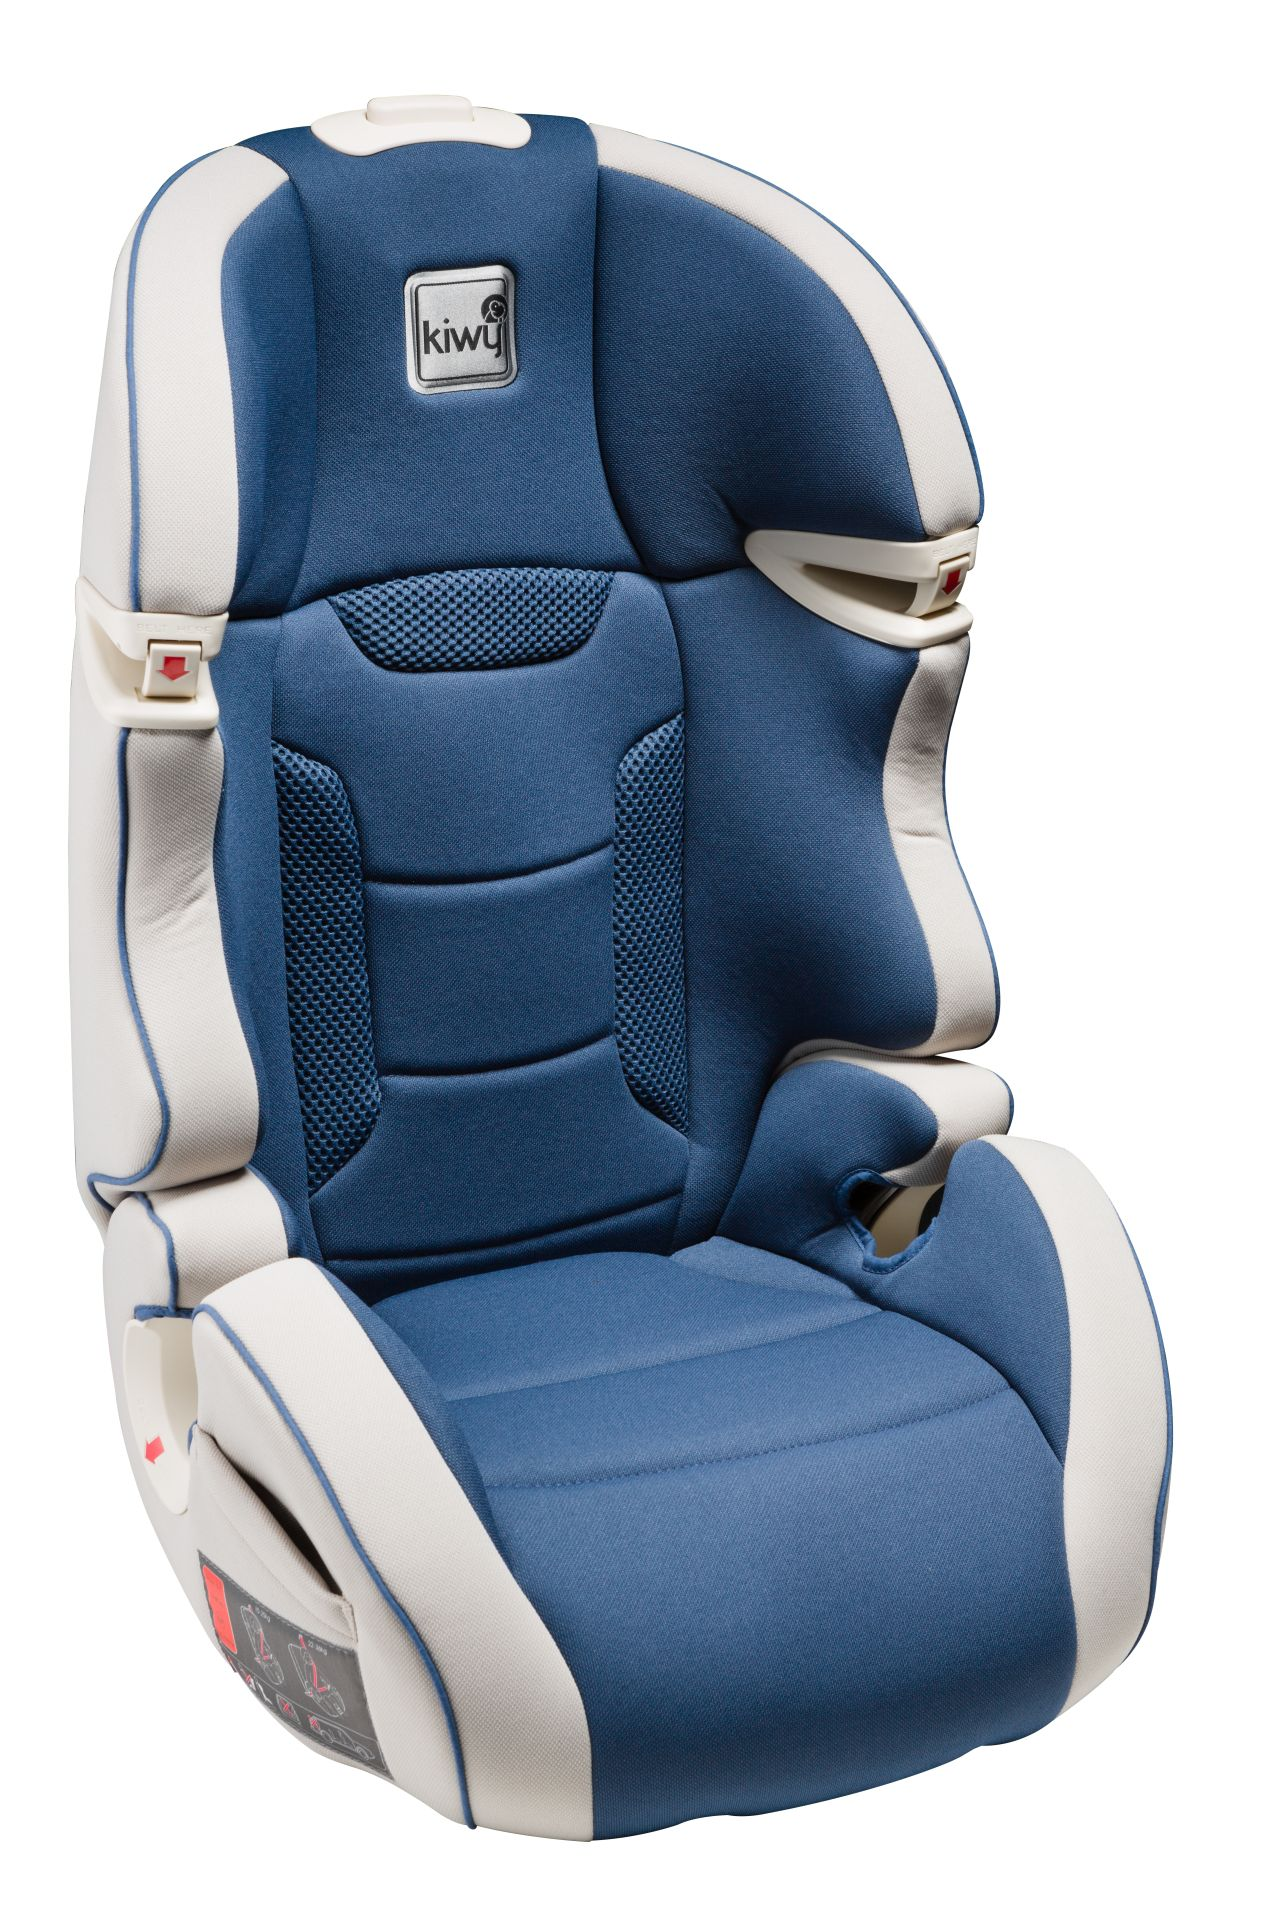 kiwy car seat s 23 universal buy at kidsroom car seats. Black Bedroom Furniture Sets. Home Design Ideas